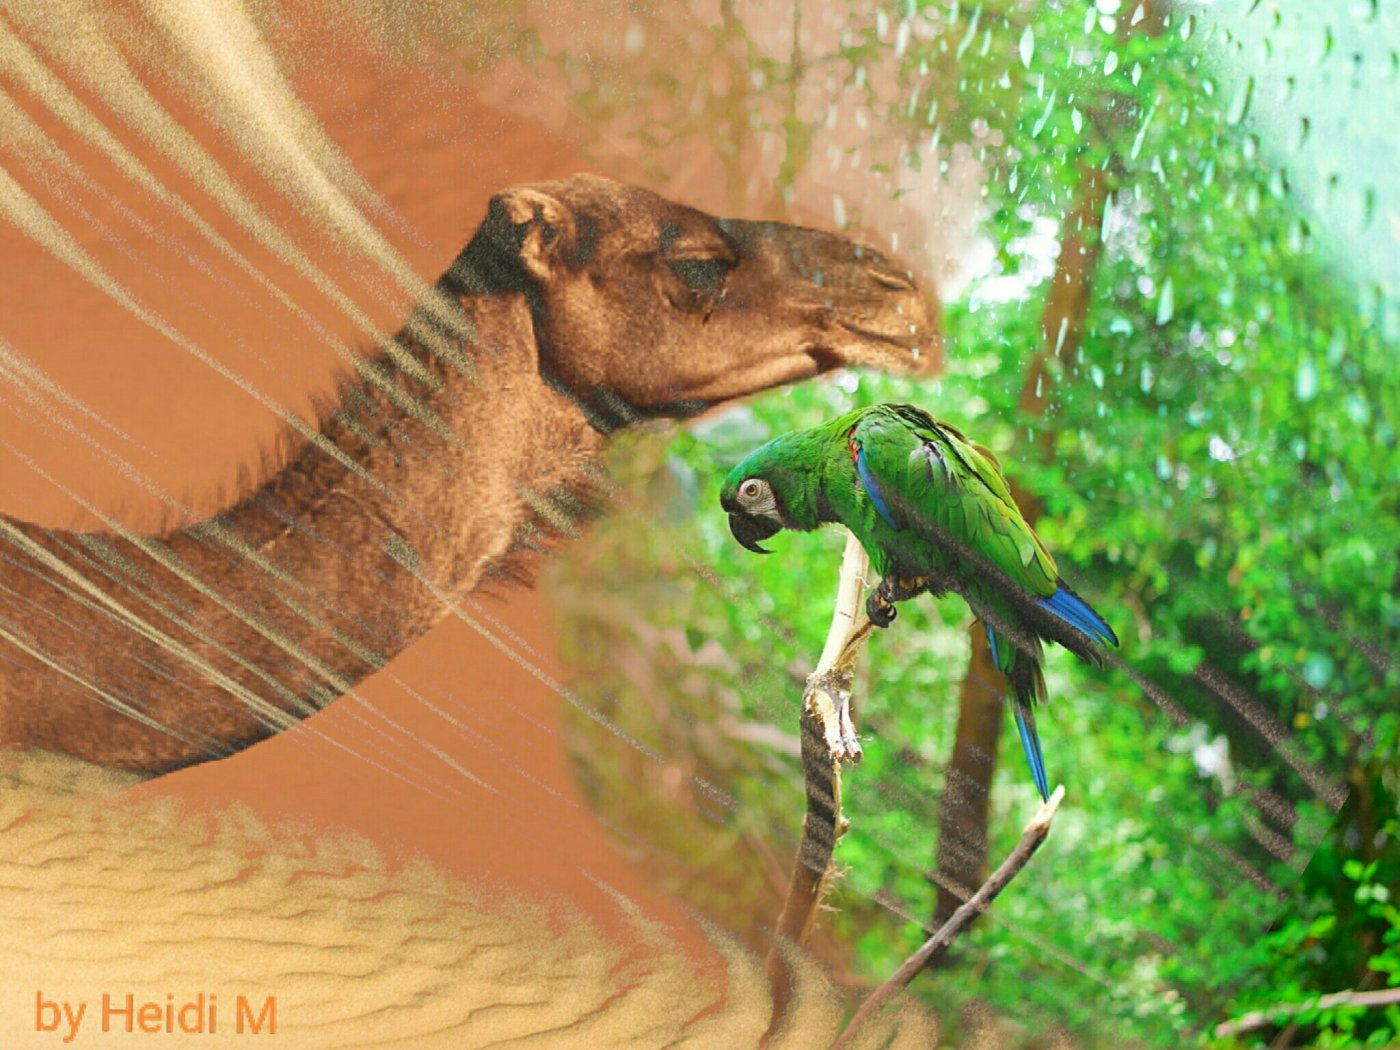 A blended picture of a camel in the desert being merged with a parrot in the rainforest.